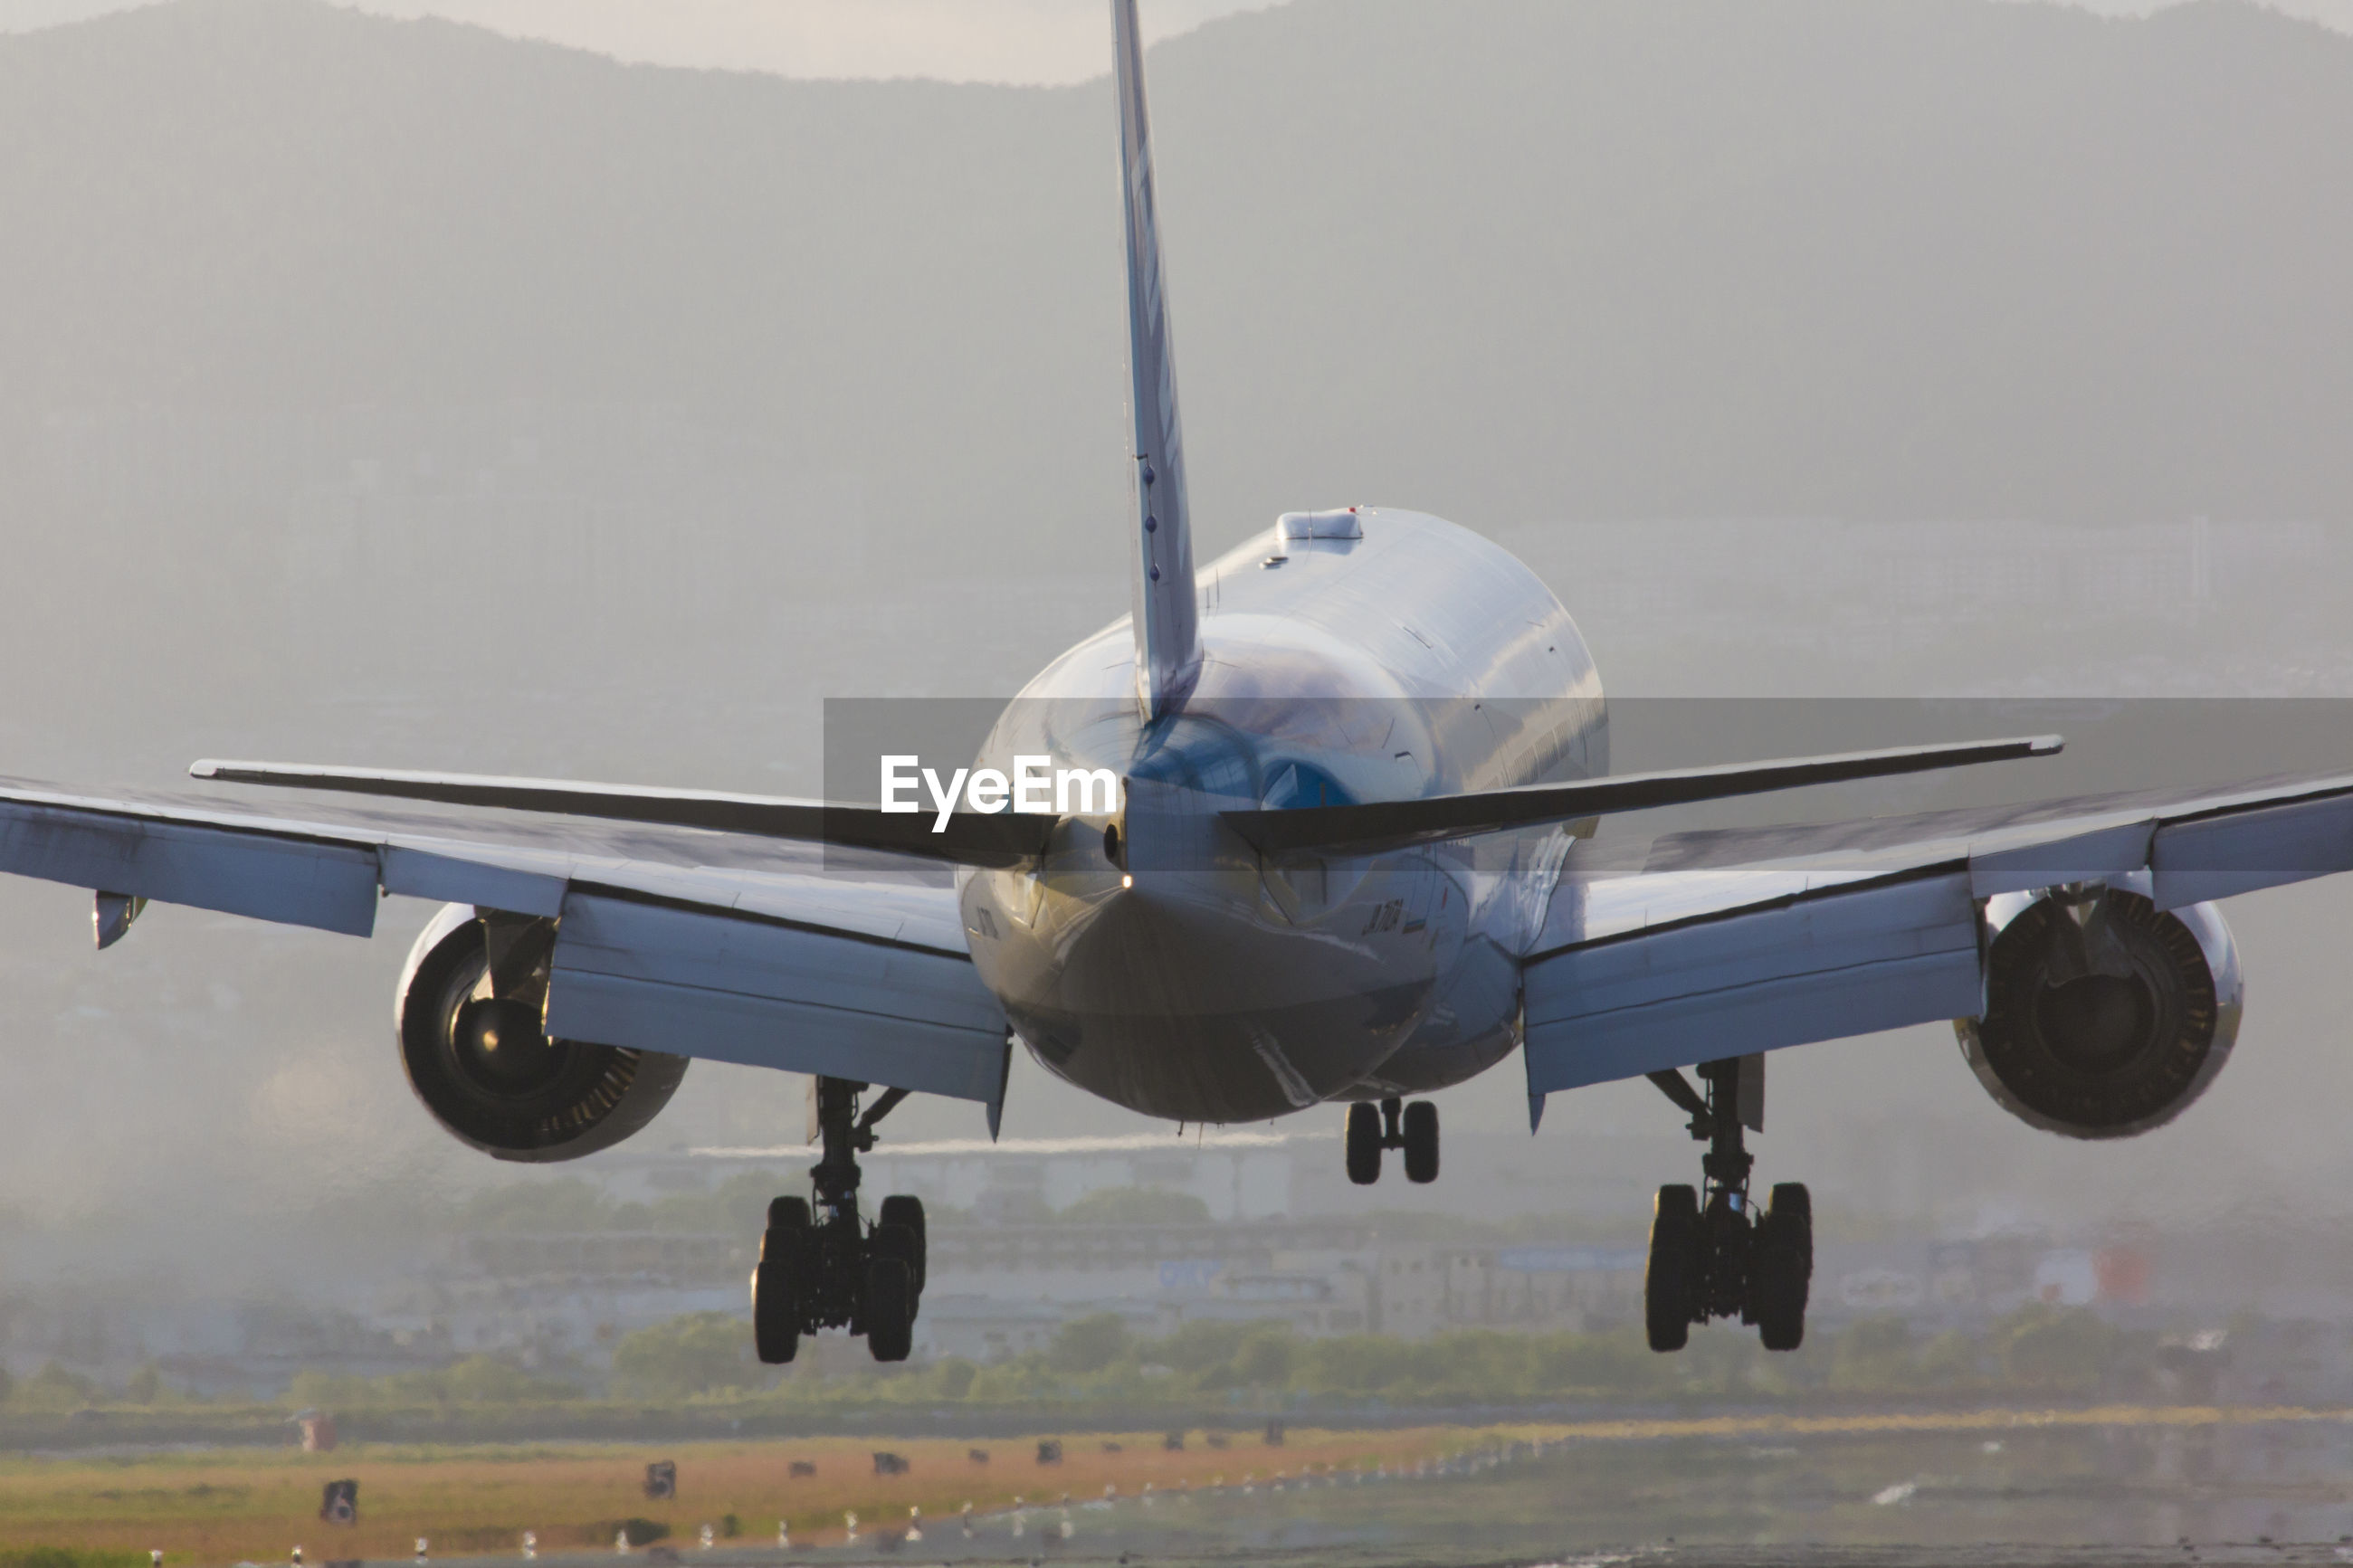 AIRPLANE FLYING OVER AIRPORT AGAINST SKY